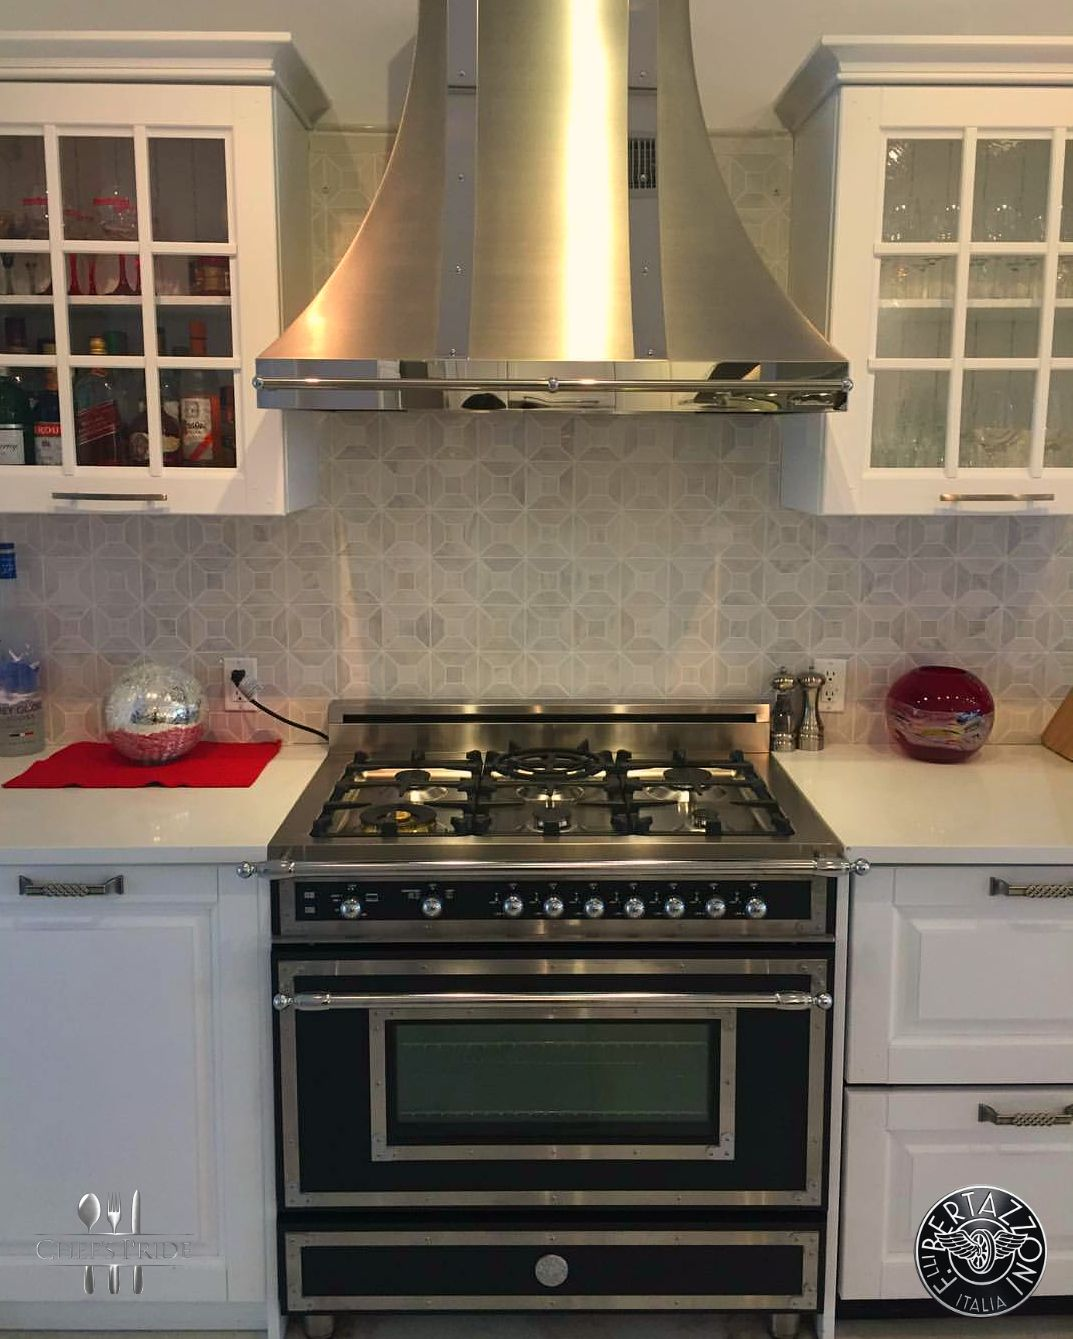 throwbackthursday a heritage of italian perfection now in a kitchen near you bertazzoni heritage stoves southafrica - Kitchen Near You